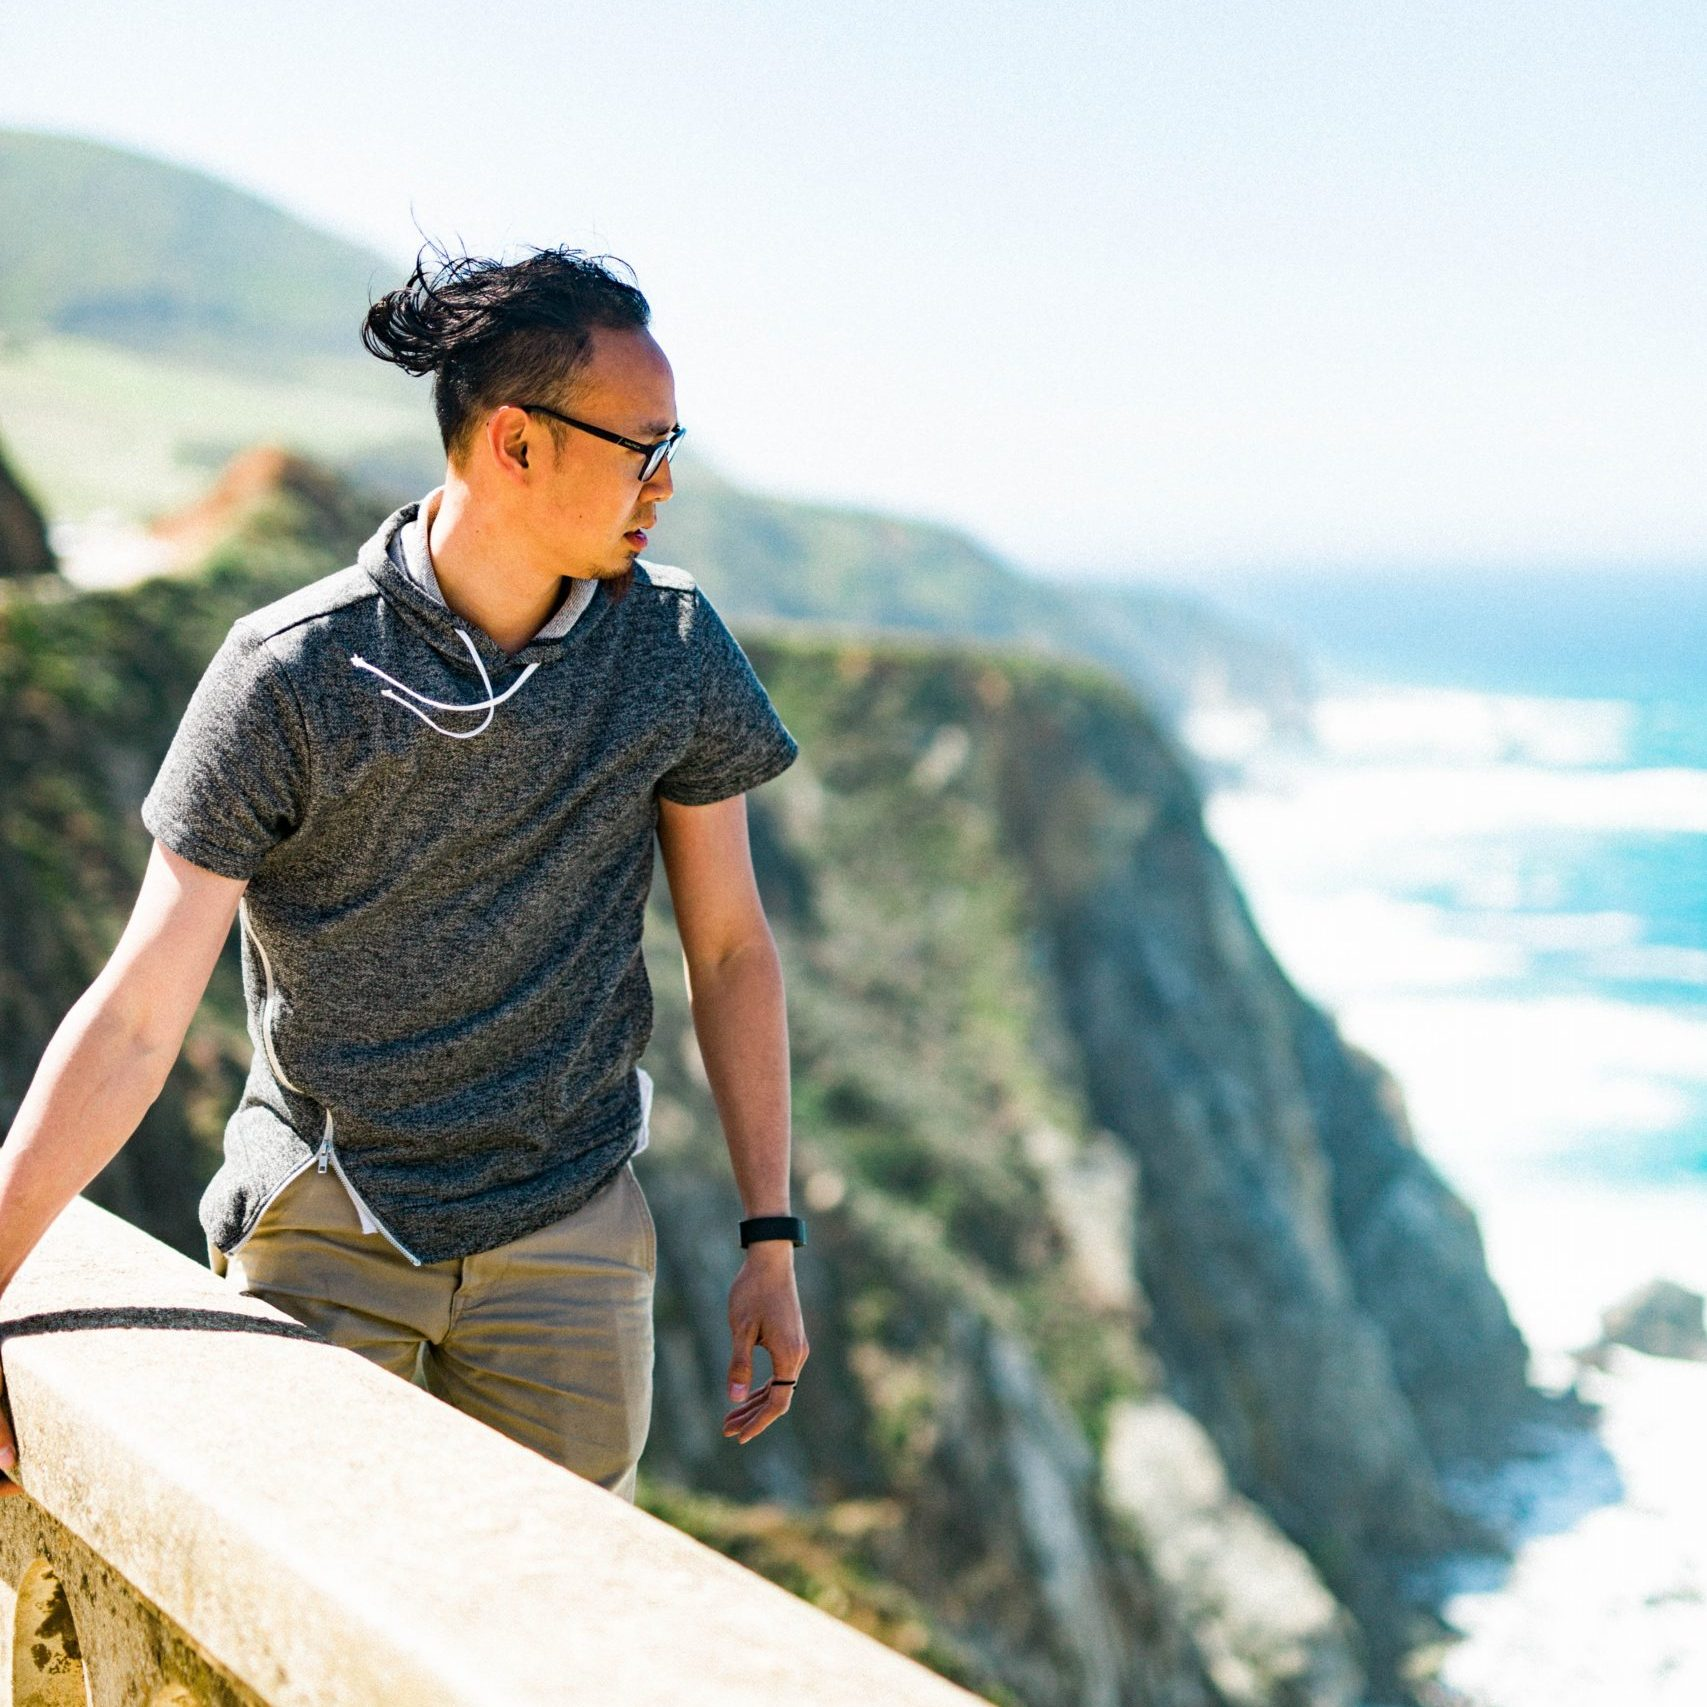 man standing on cliff while holding concrete barrier